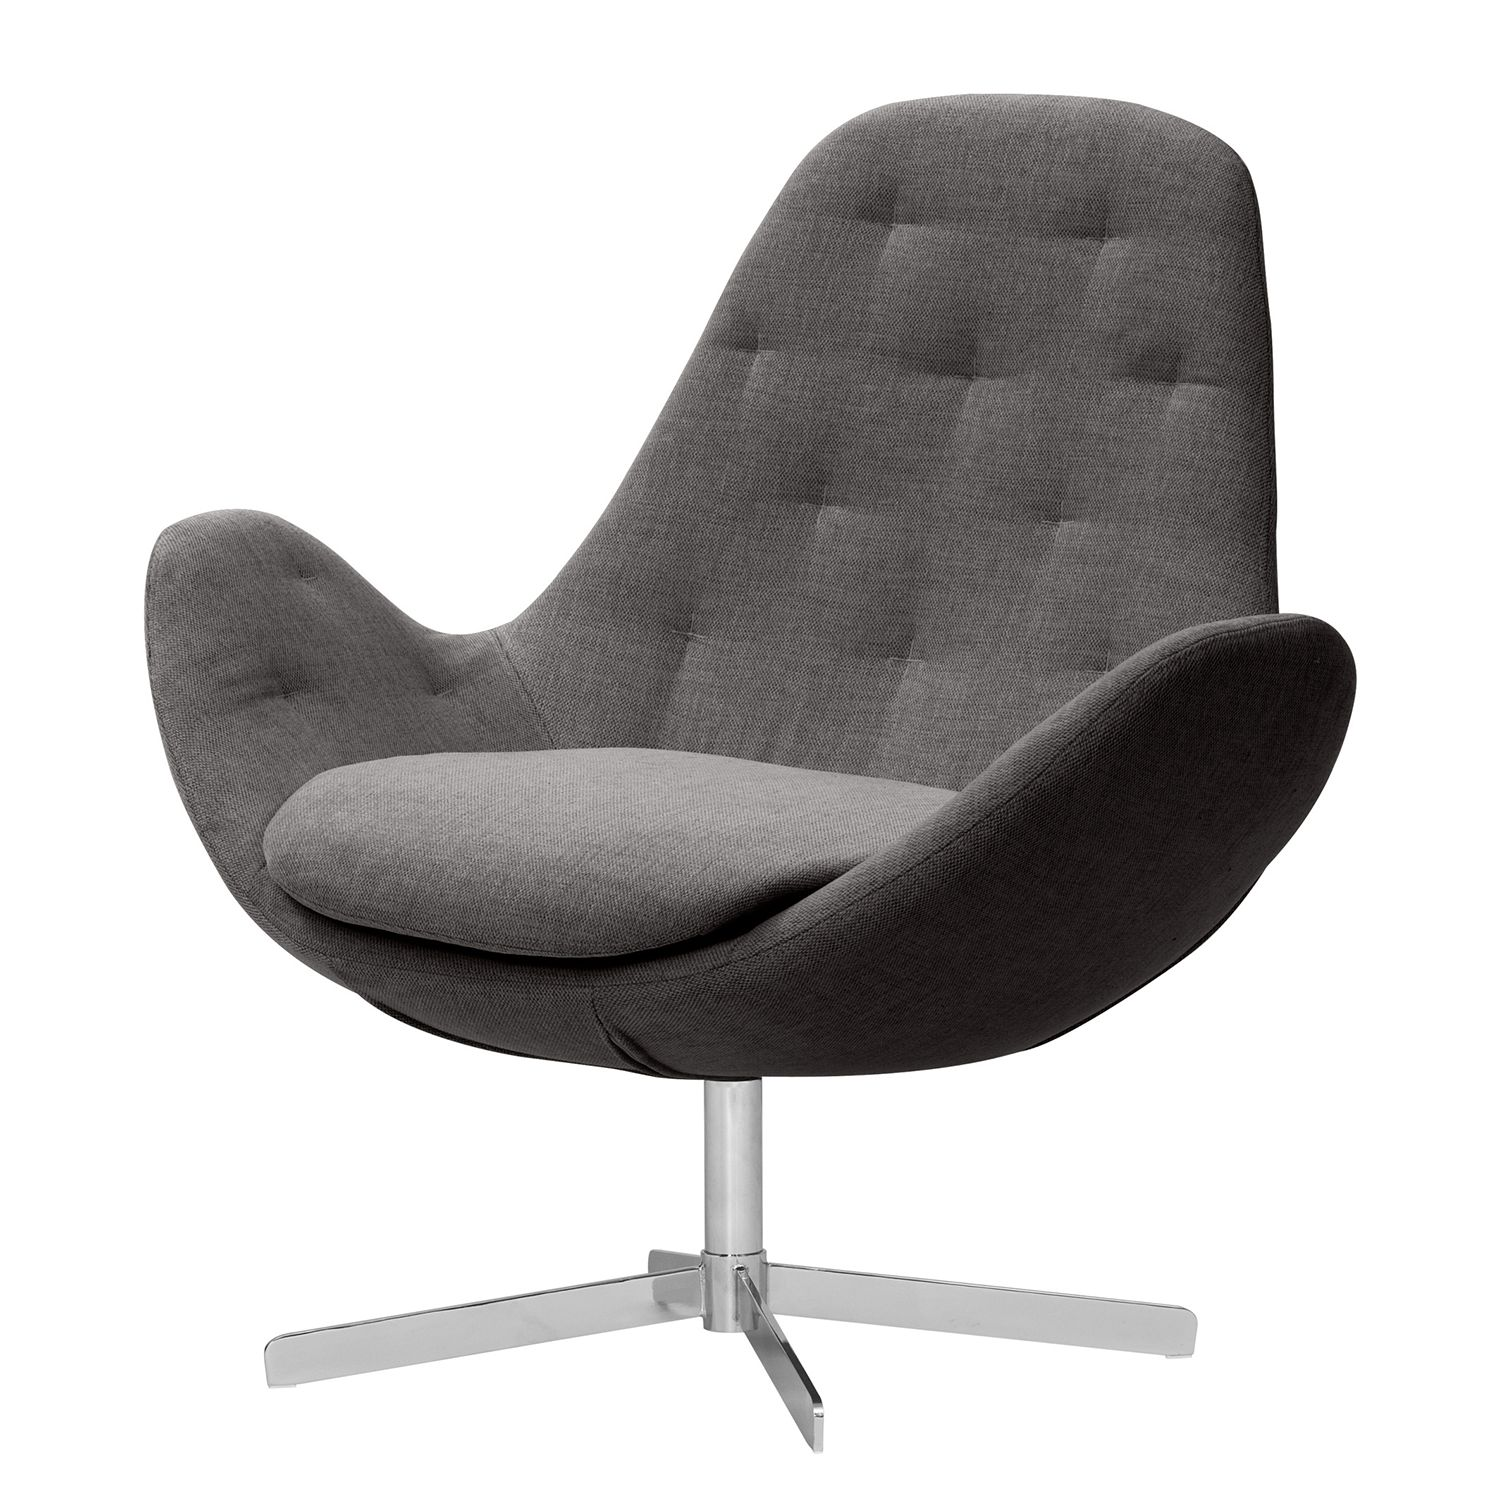 goedkoop Fauteuil Houston IV geweven stof Chroom Stof Anda II Antraciet Studio Copenhagen